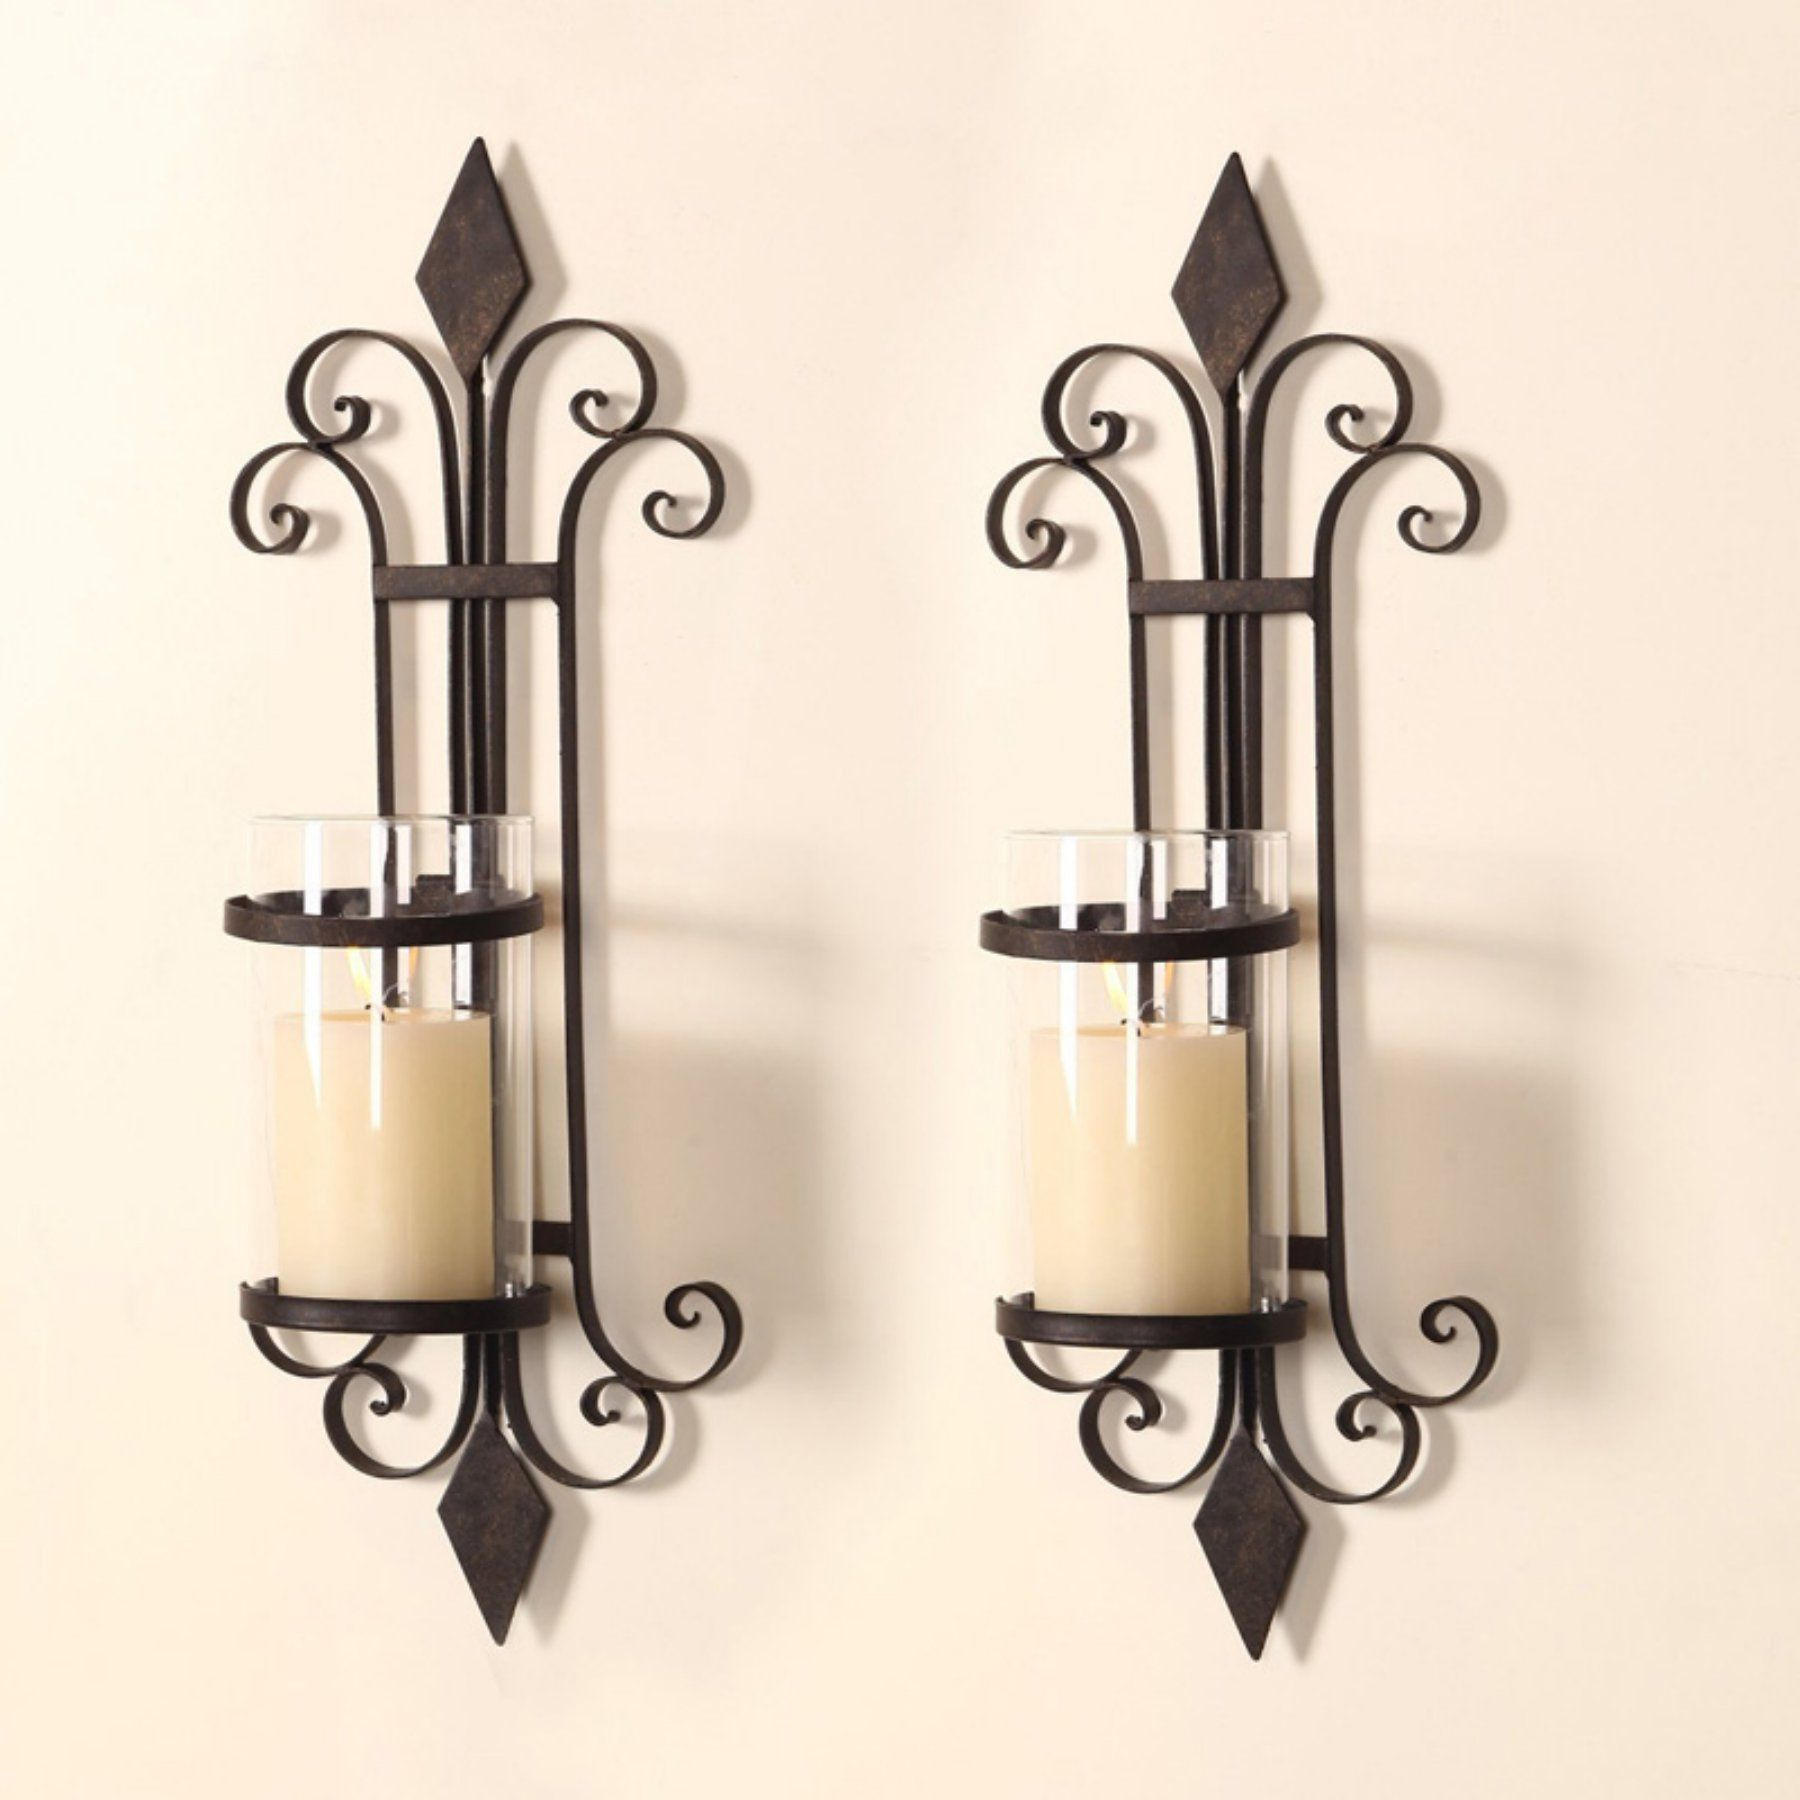 Adeco Trading Iron And Glass Candle Wall Sconce Set Of 2 Hd0006